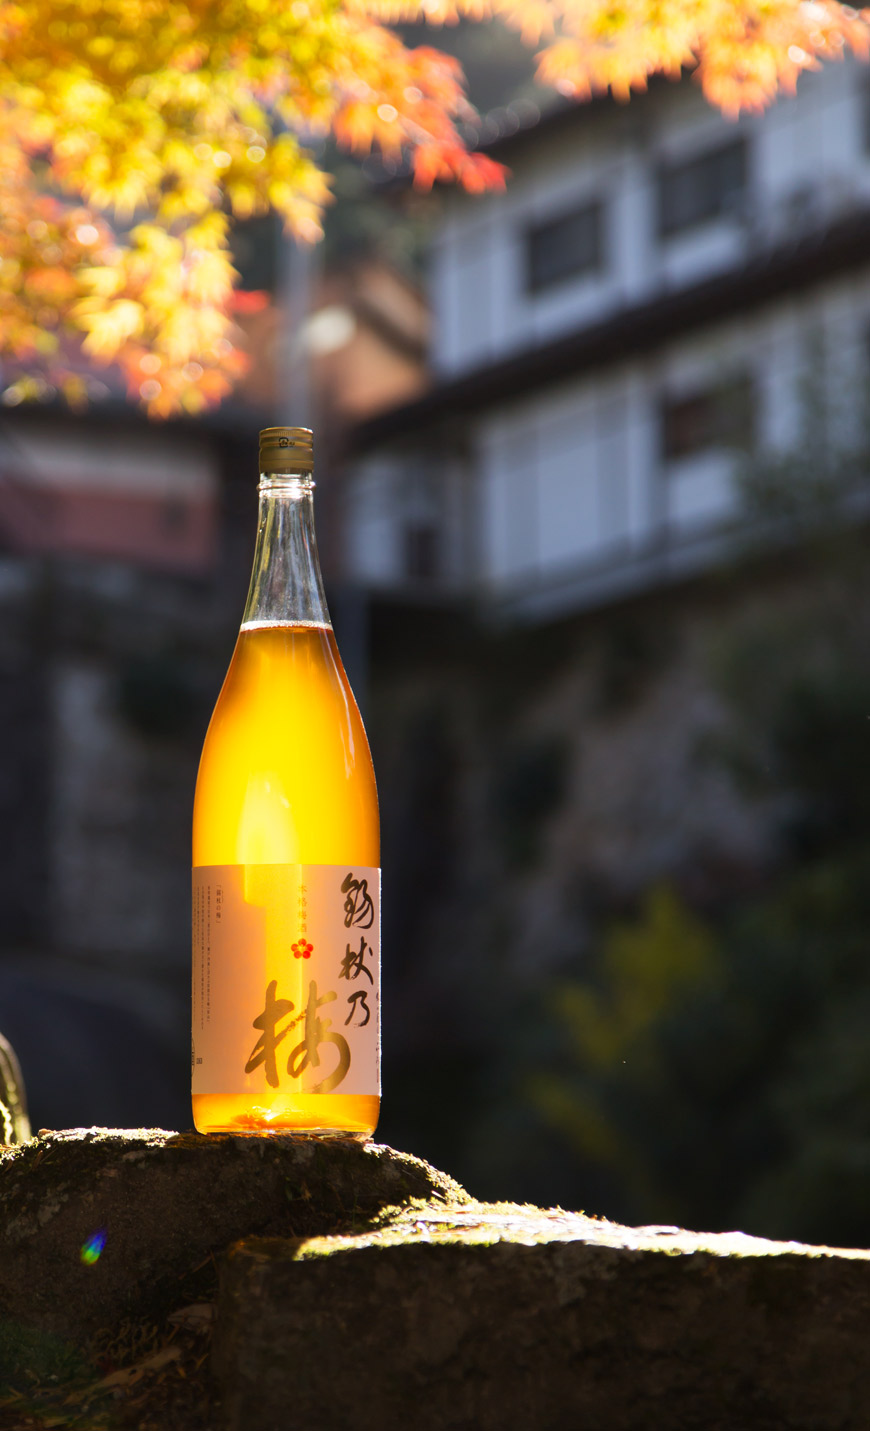 Shakujo no umeshu label design